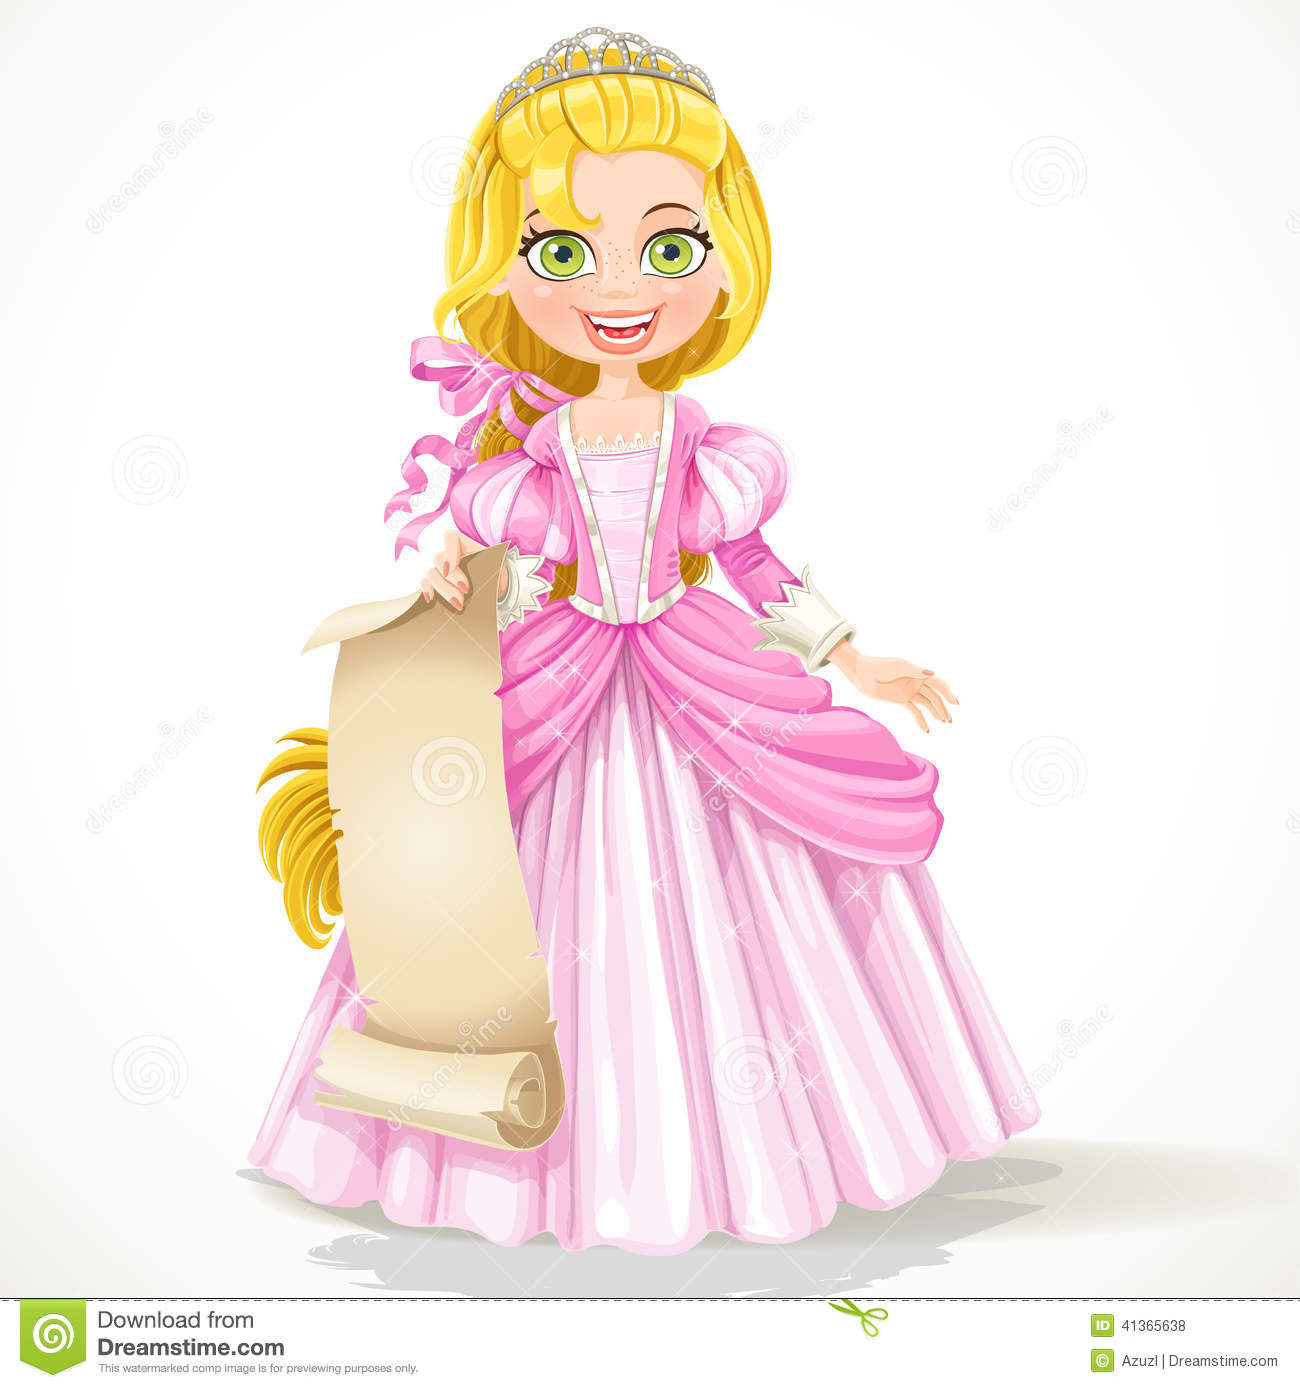 Cute Princess In Tiara Holding A Blank Sheet Of Parchment